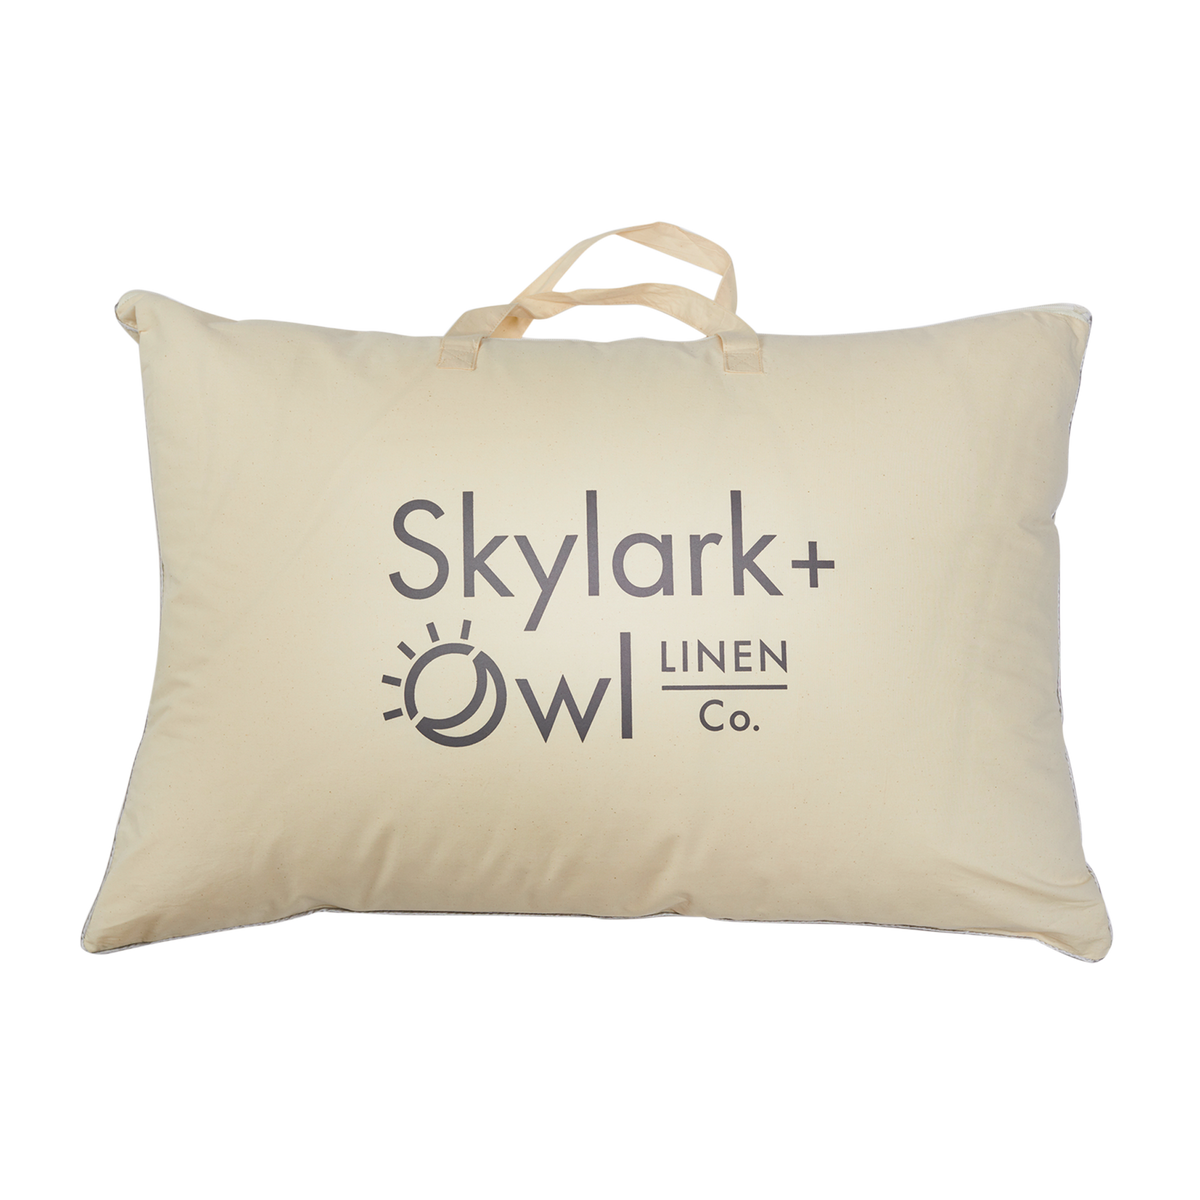 Canadian Hutterite Down Pillow | Skylark+Owl Linen Co.